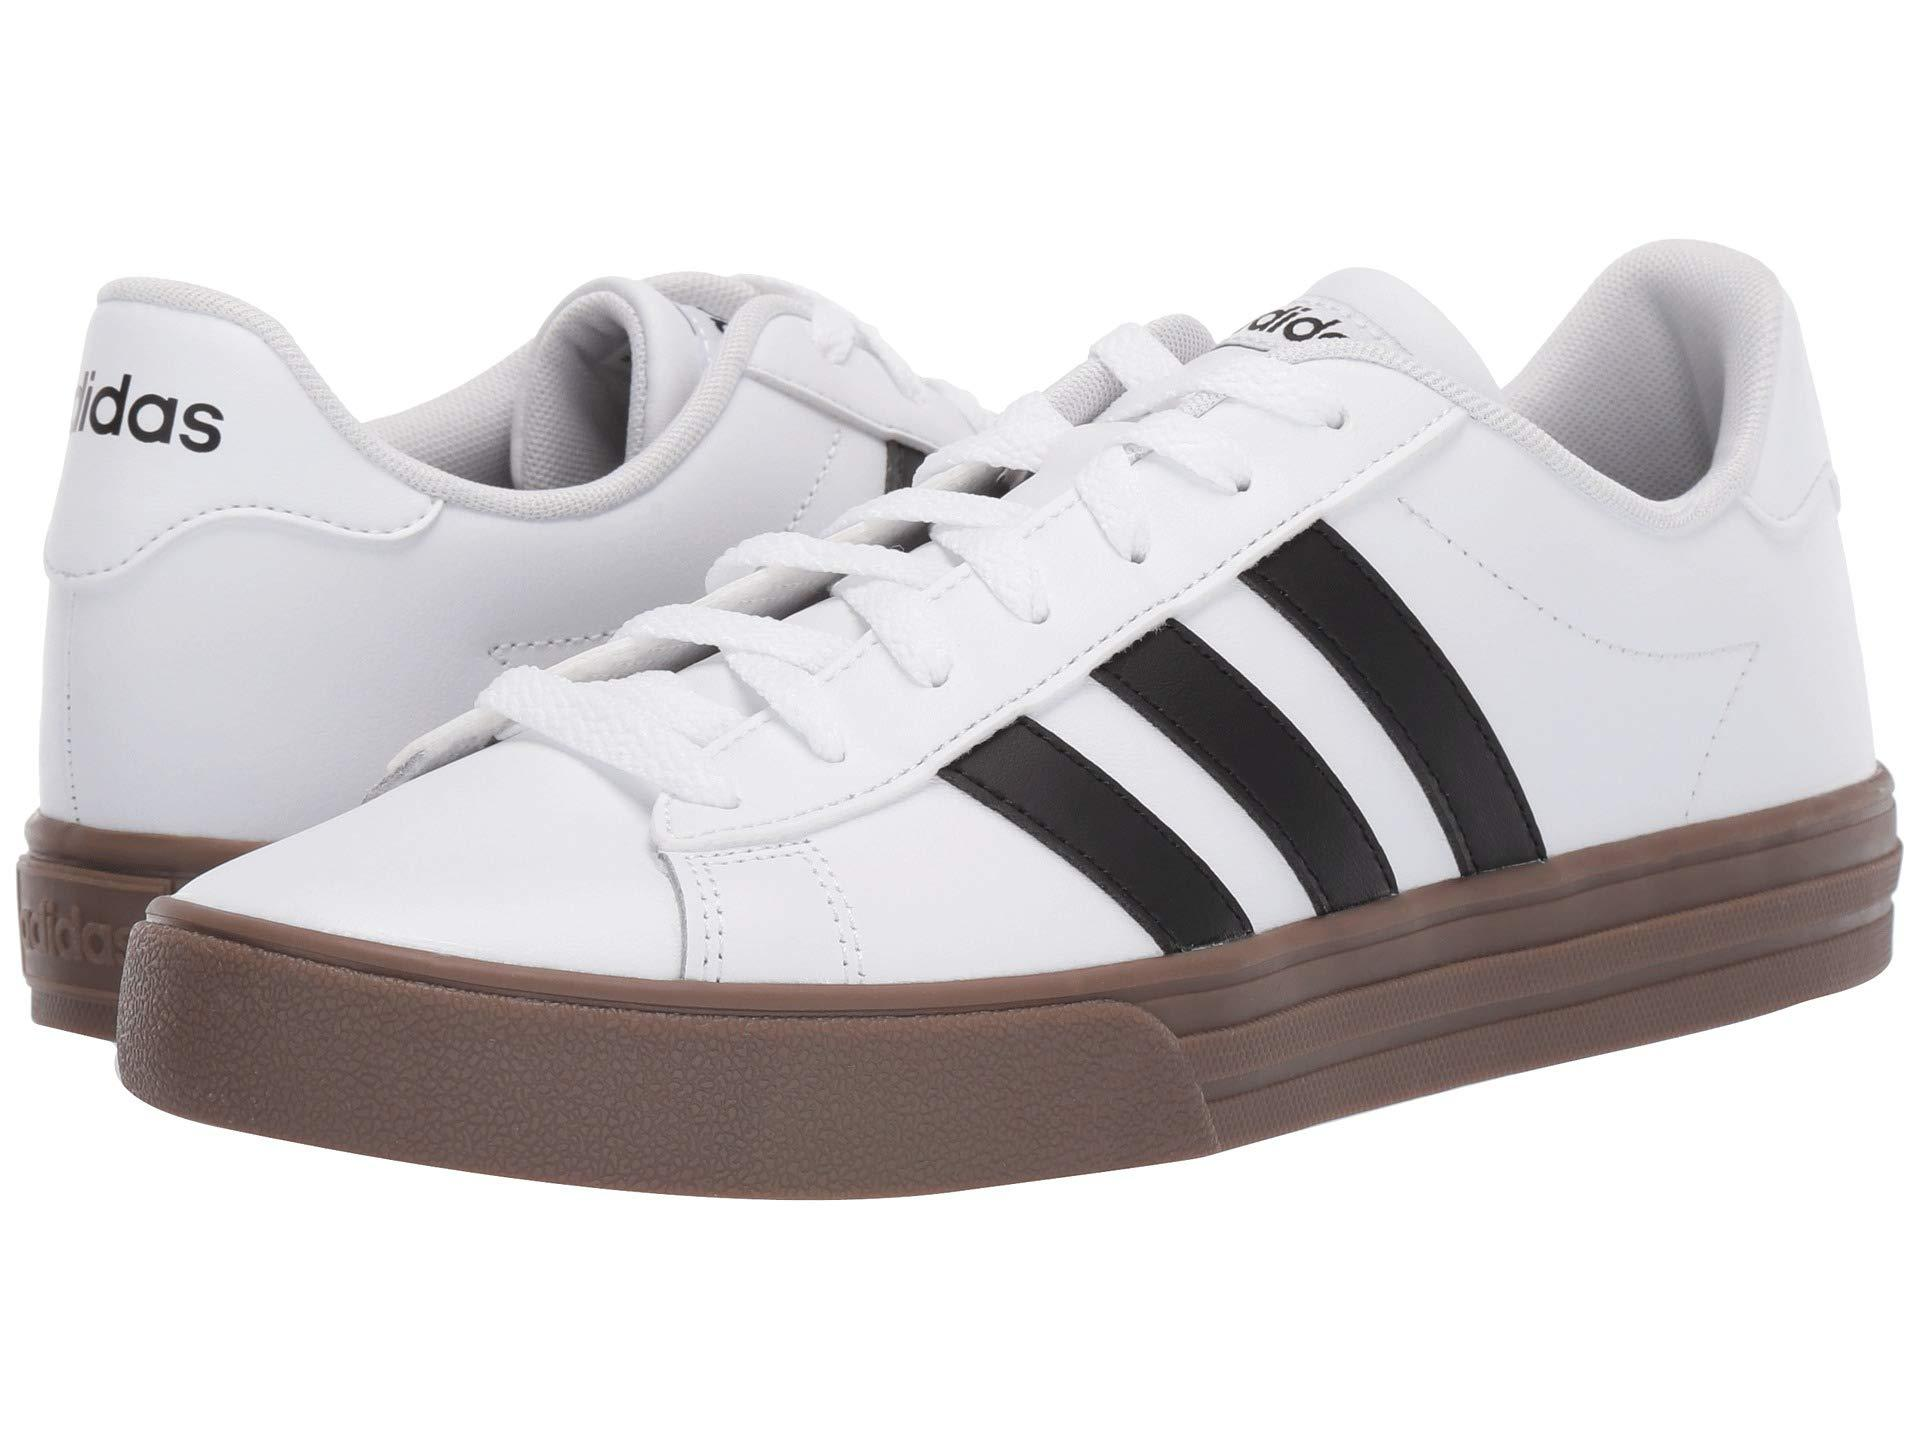 60a872af70b Lyst - adidas Daily 2.0 in White for Men